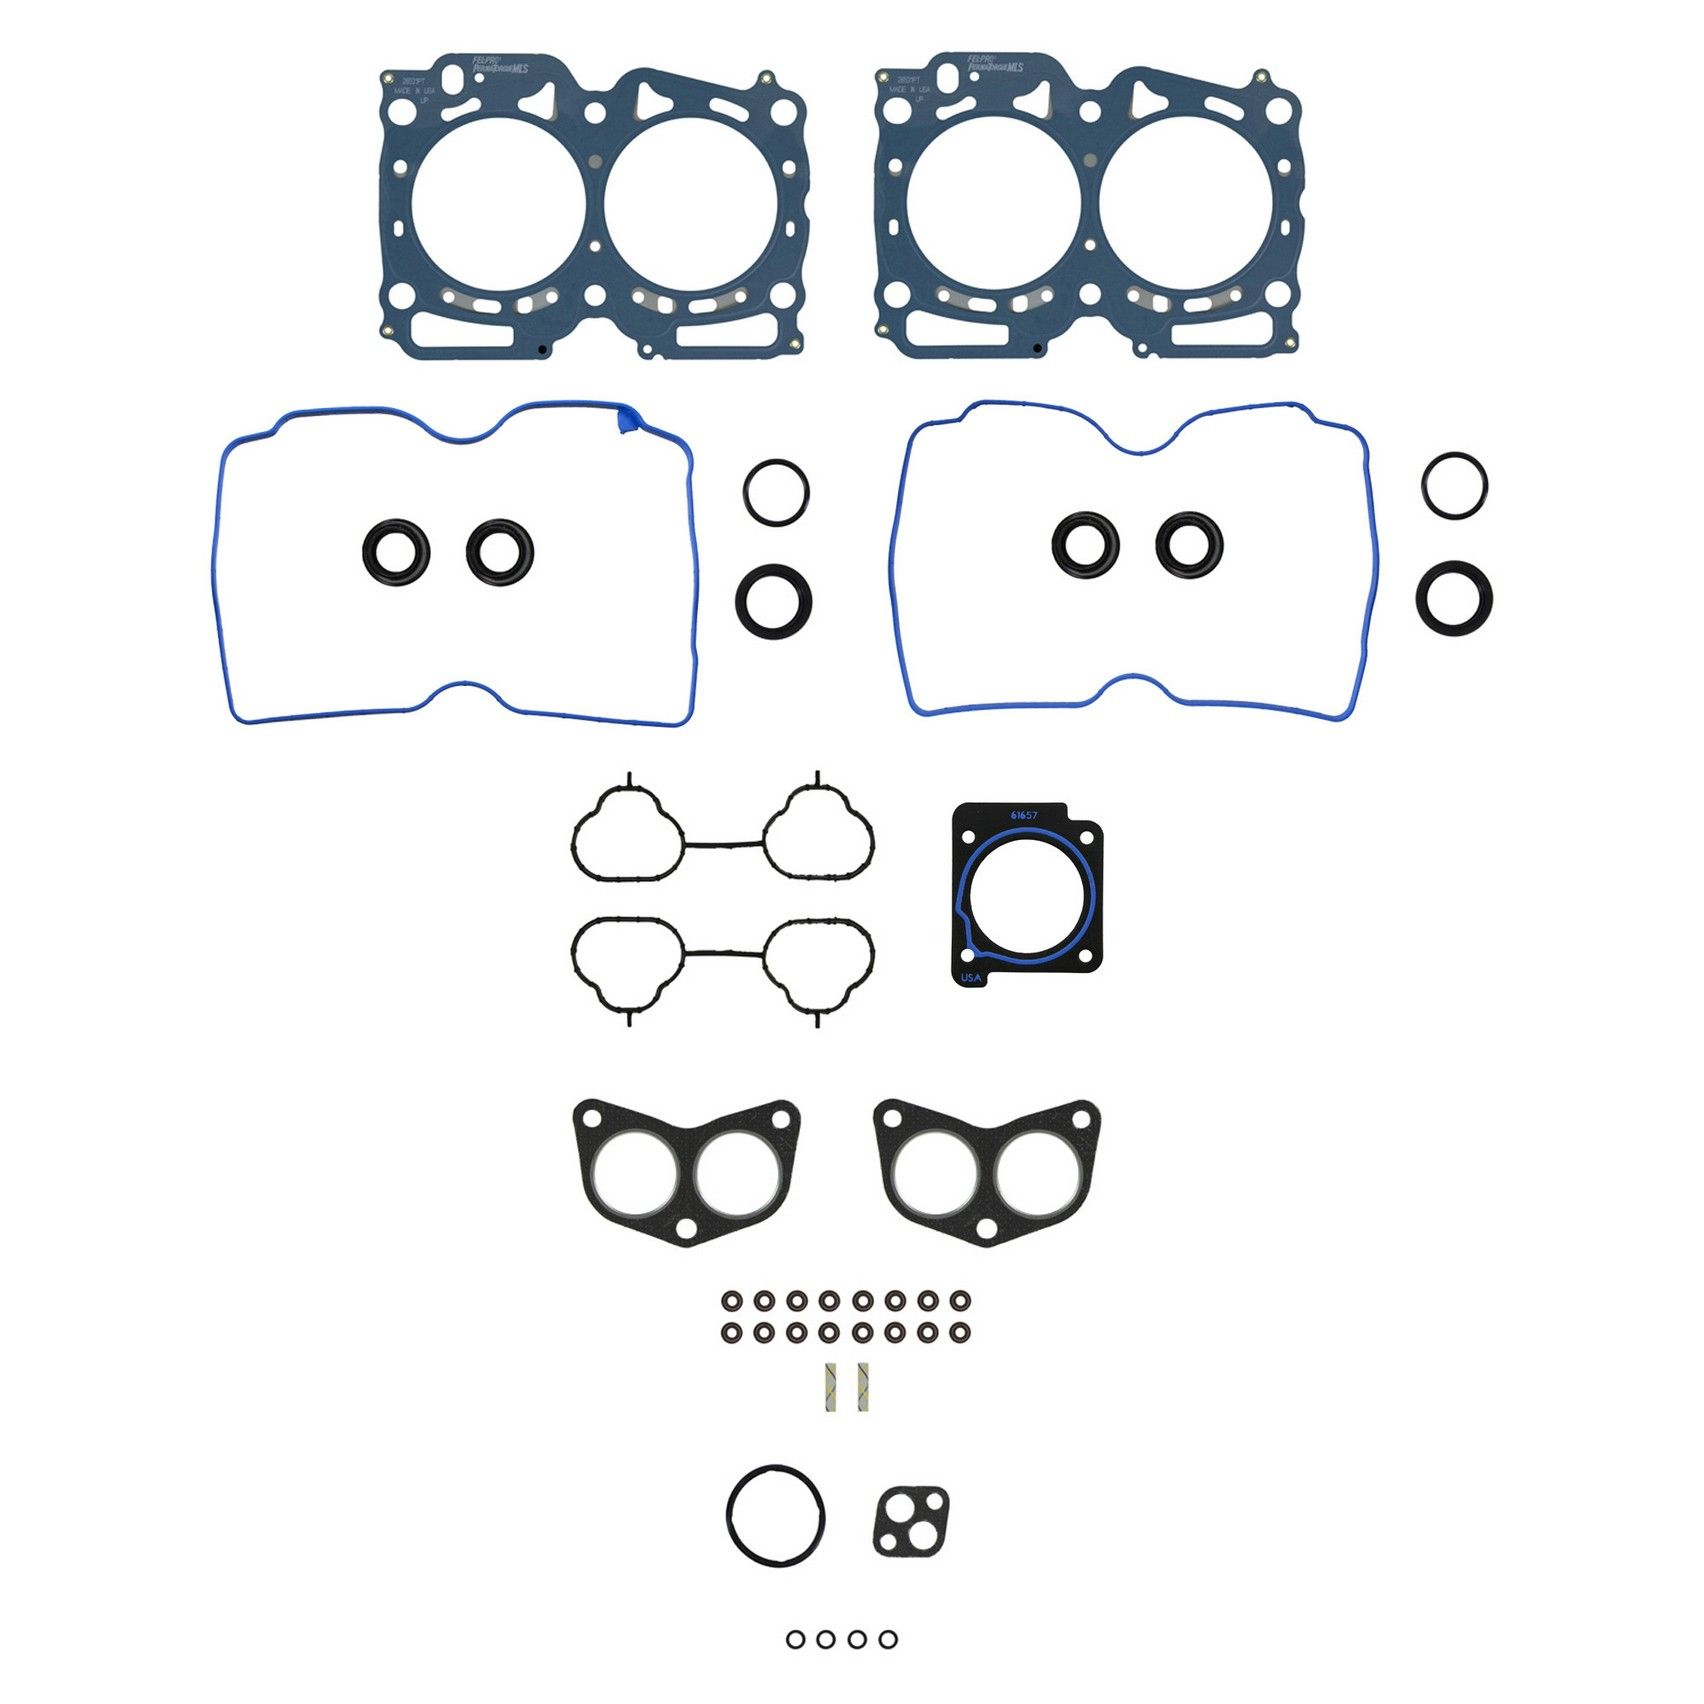 Subaru Outback Engine Cylinder Head Gasket Set Replacement Beck 1998 2010 4 Cyl 25l Felpro Hs 26531 Pt 3 Bolt Required Bolts Not Incl